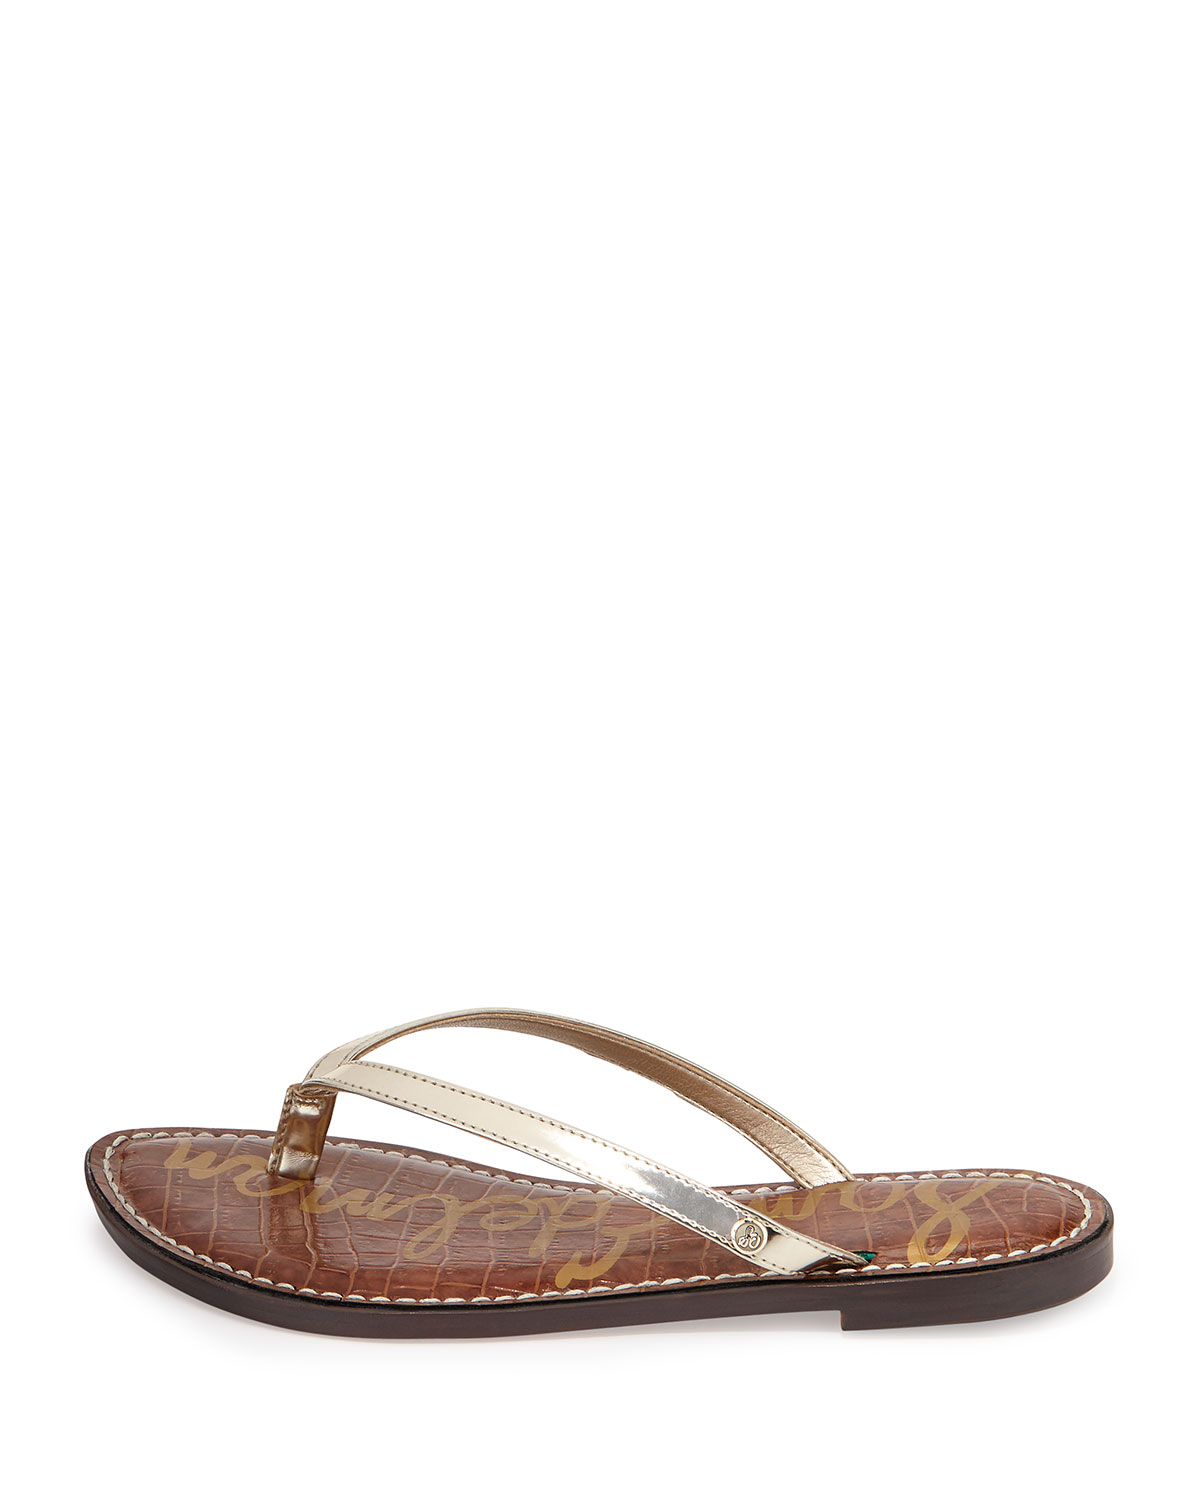 0c490be5ed42 Lyst - Sam Edelman Gracie Metallic Thong Sandal in Brown